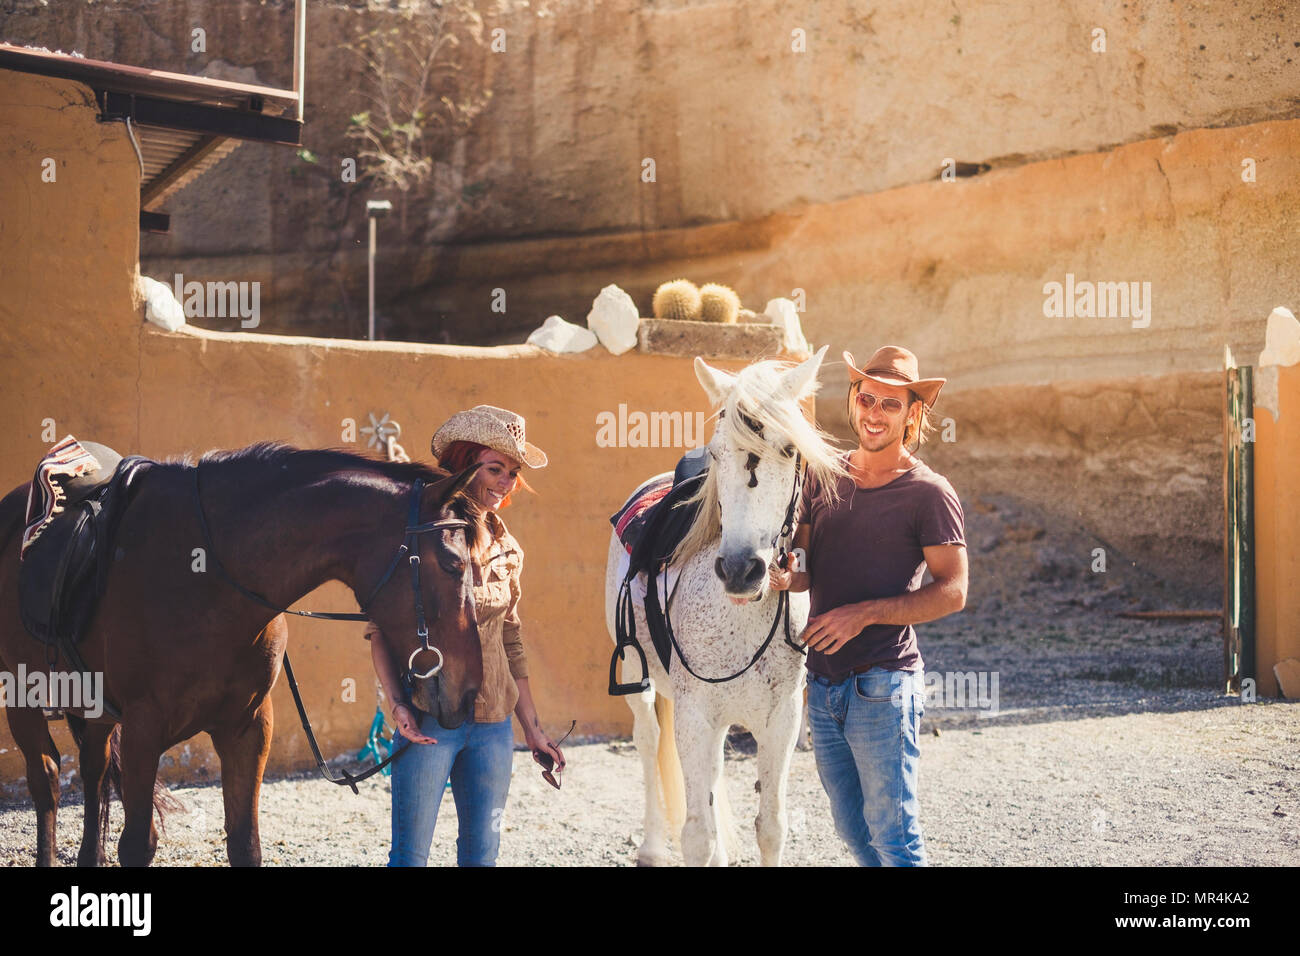 alternative lifestyle full contact with nature and animals in a ranch for a young and beautiful man and woman with horses. sunny day for freedom and d - Stock Image